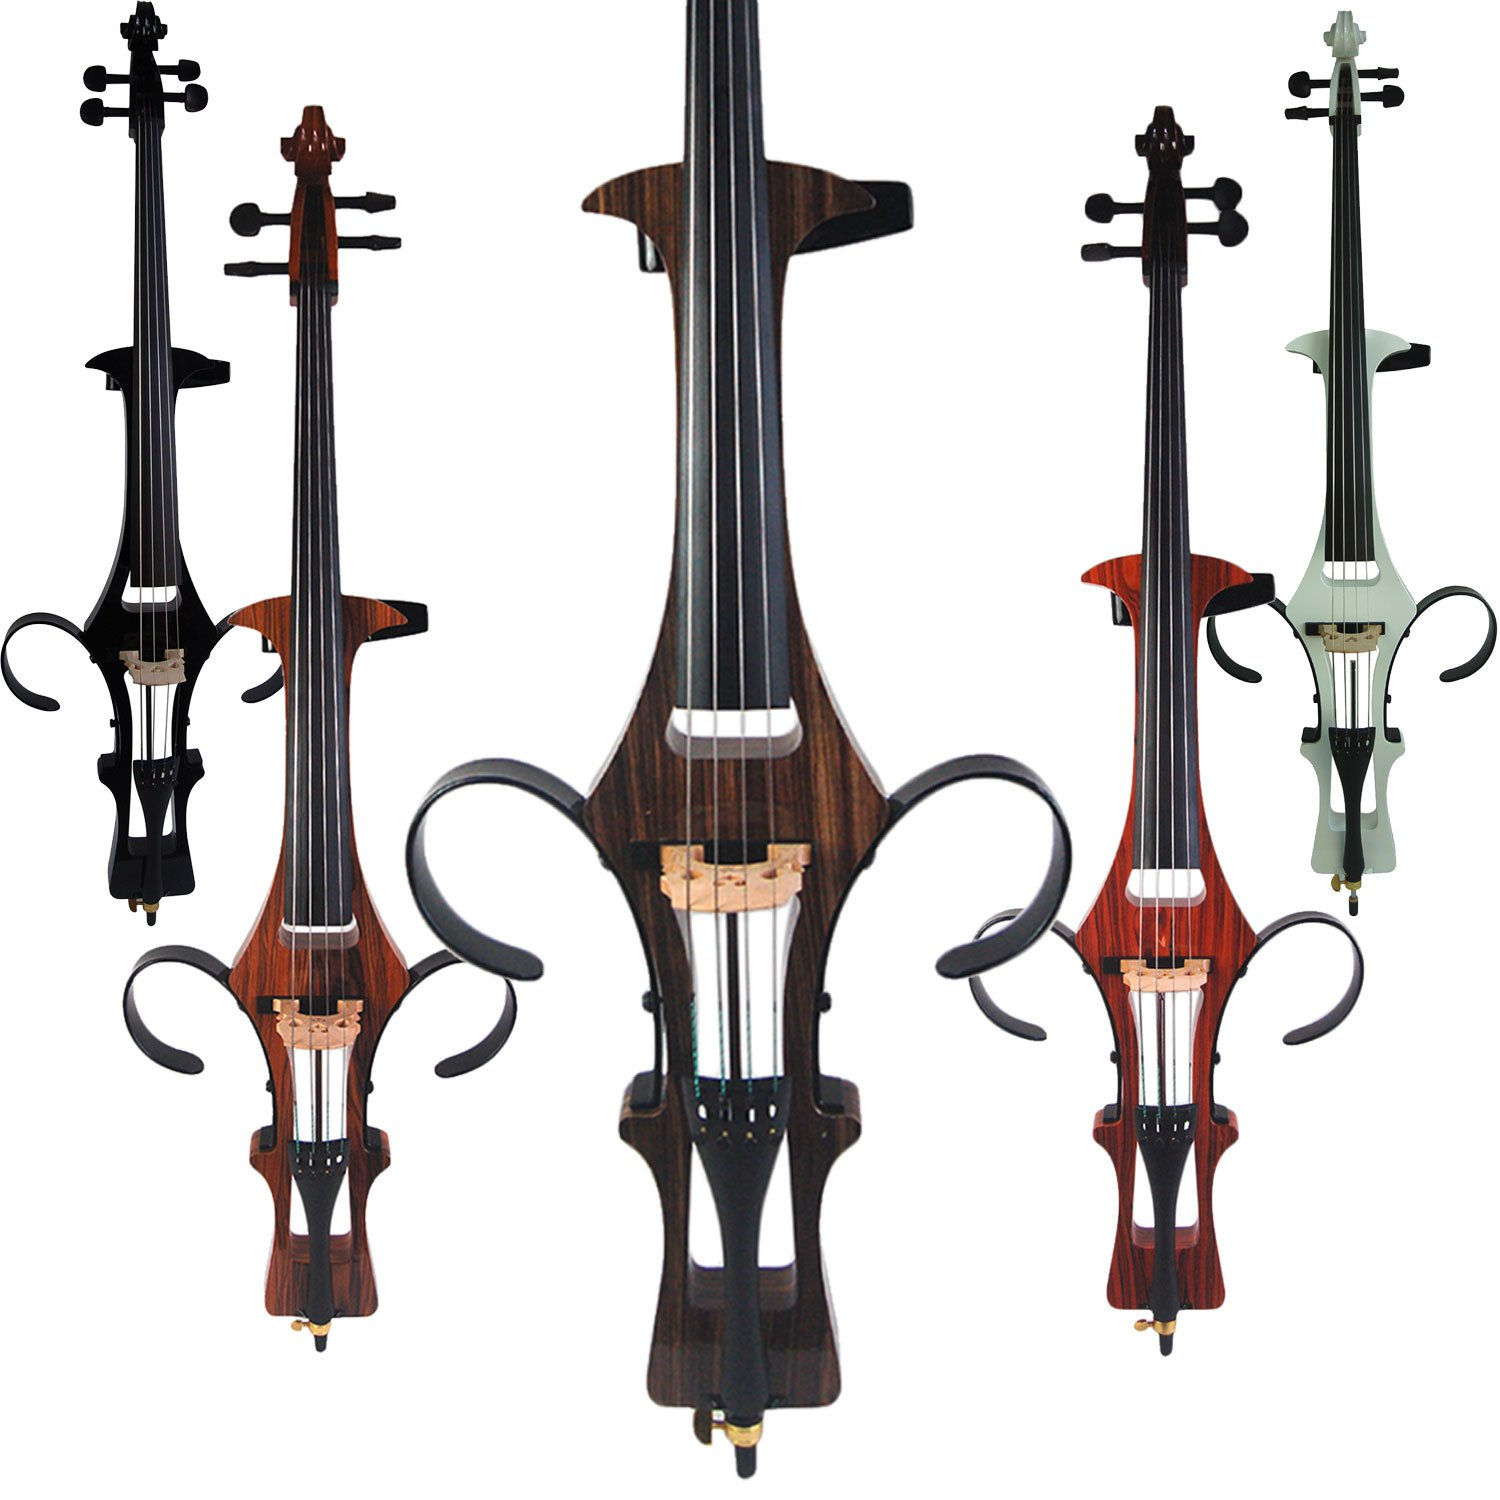 Leeche Handmade Professional Solid Wood Electric Cello 4/4 Full Size Silent Electric Cello-Wood Grain